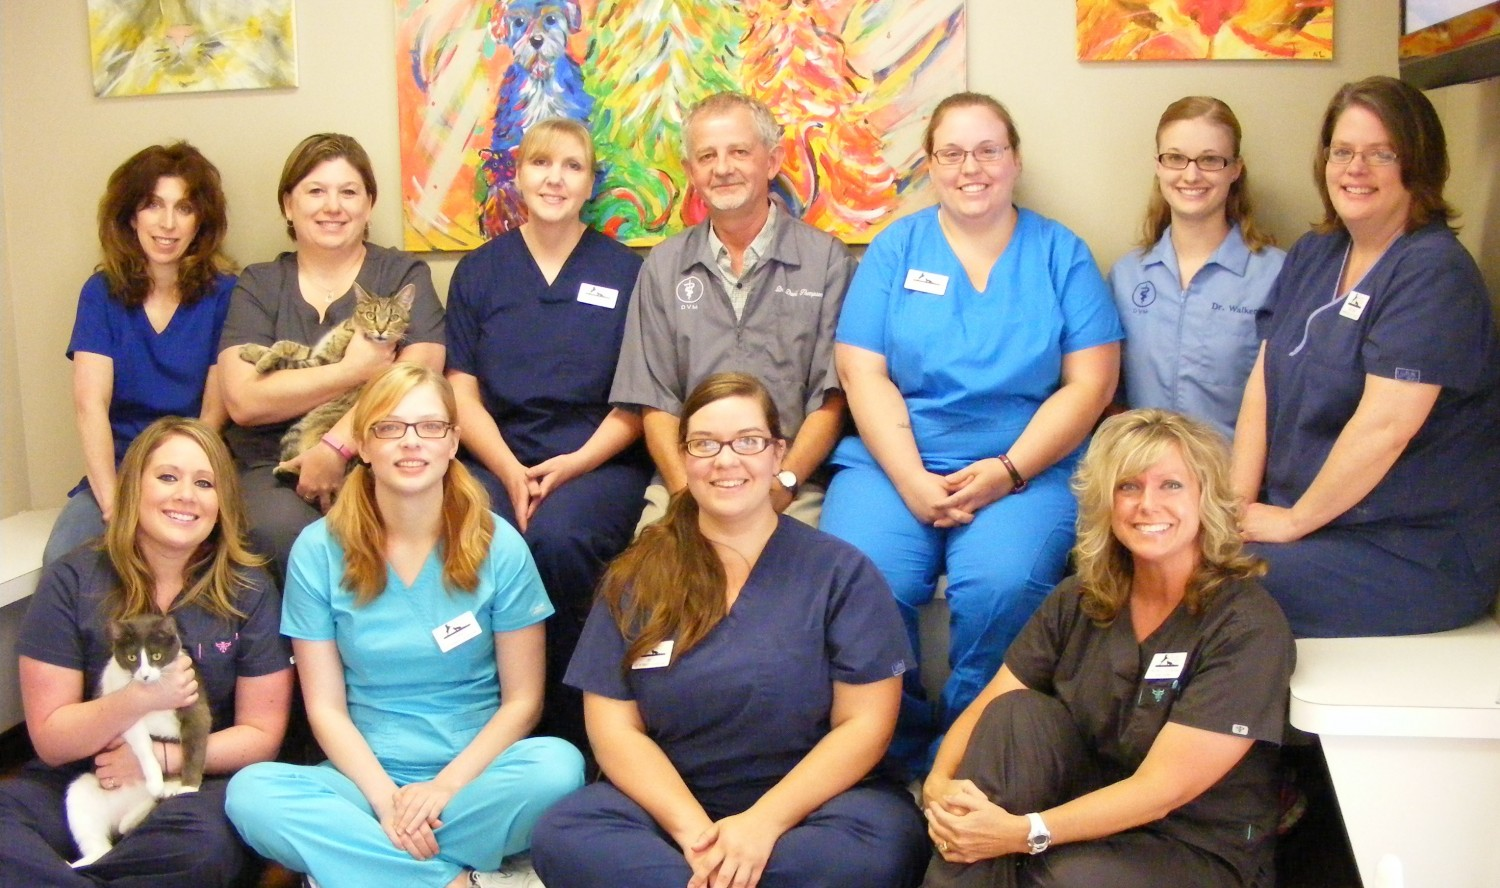 Clyde Park Veterinary Clinic - Veterinarians serving Grand Rapids, Wyoming, Grandville, and Byron Center - Welcome to our site!